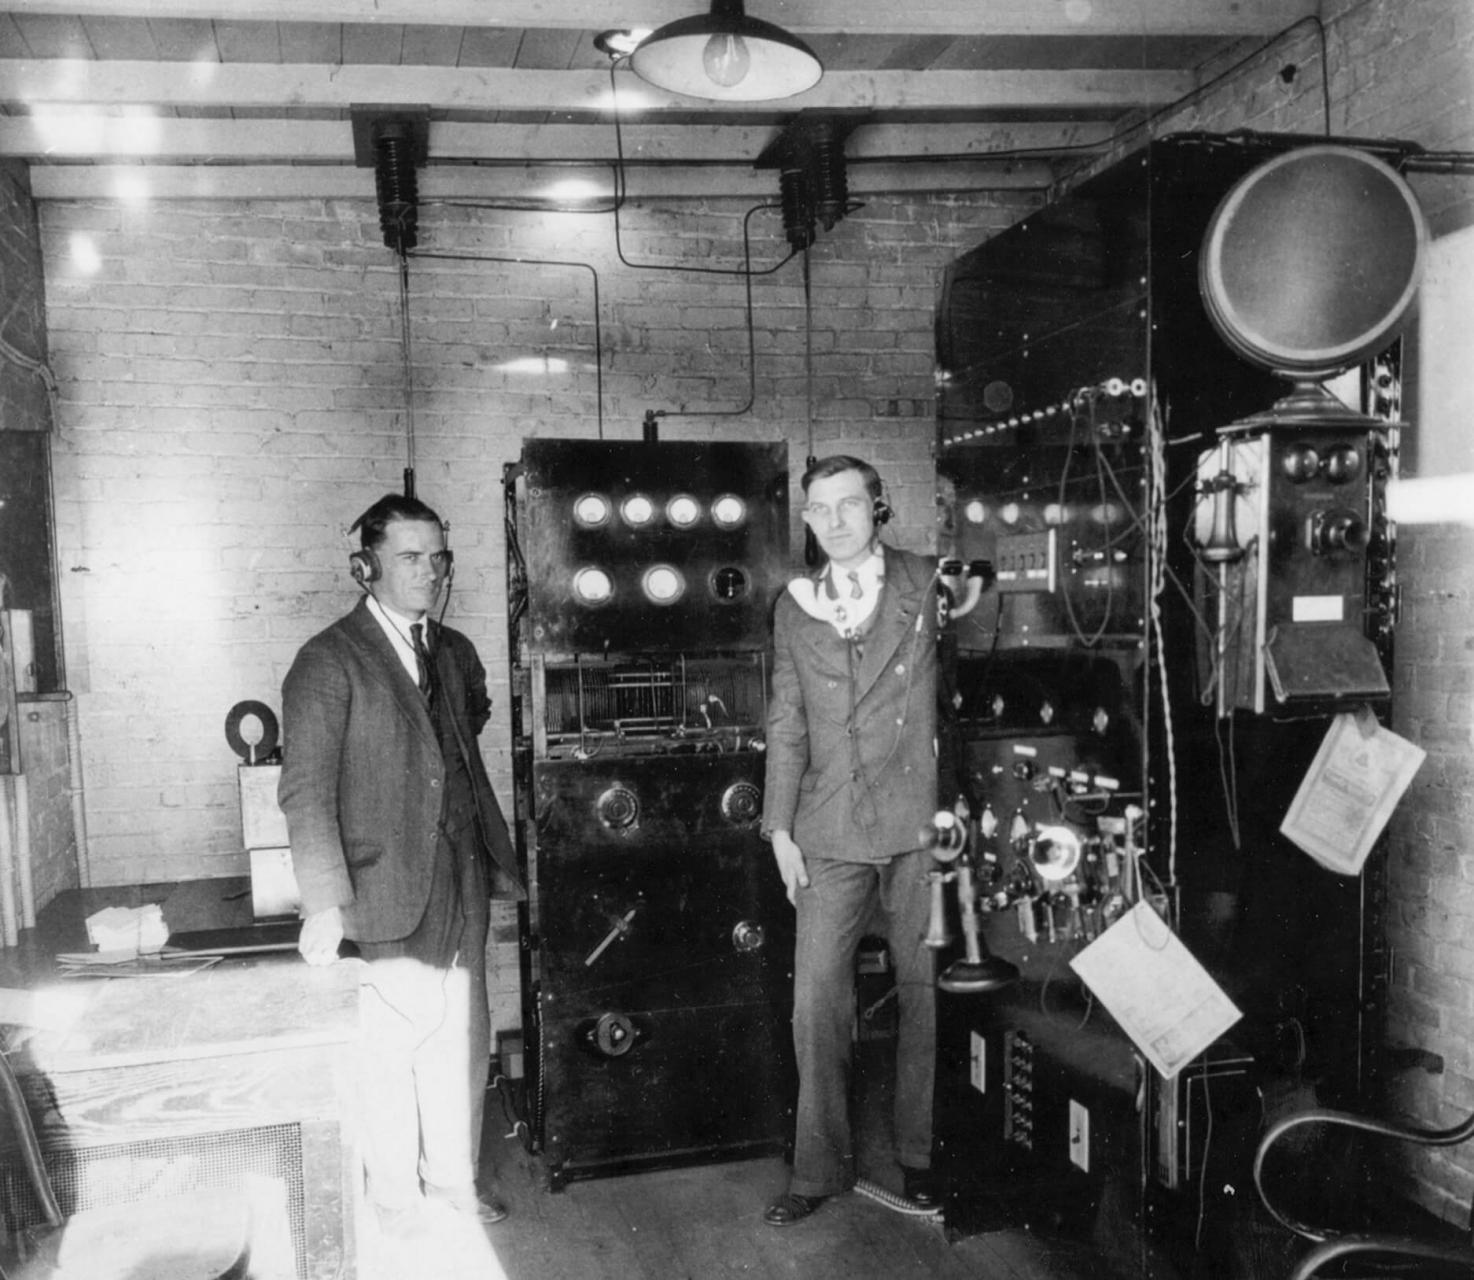 An early photo of WBT's transmitter